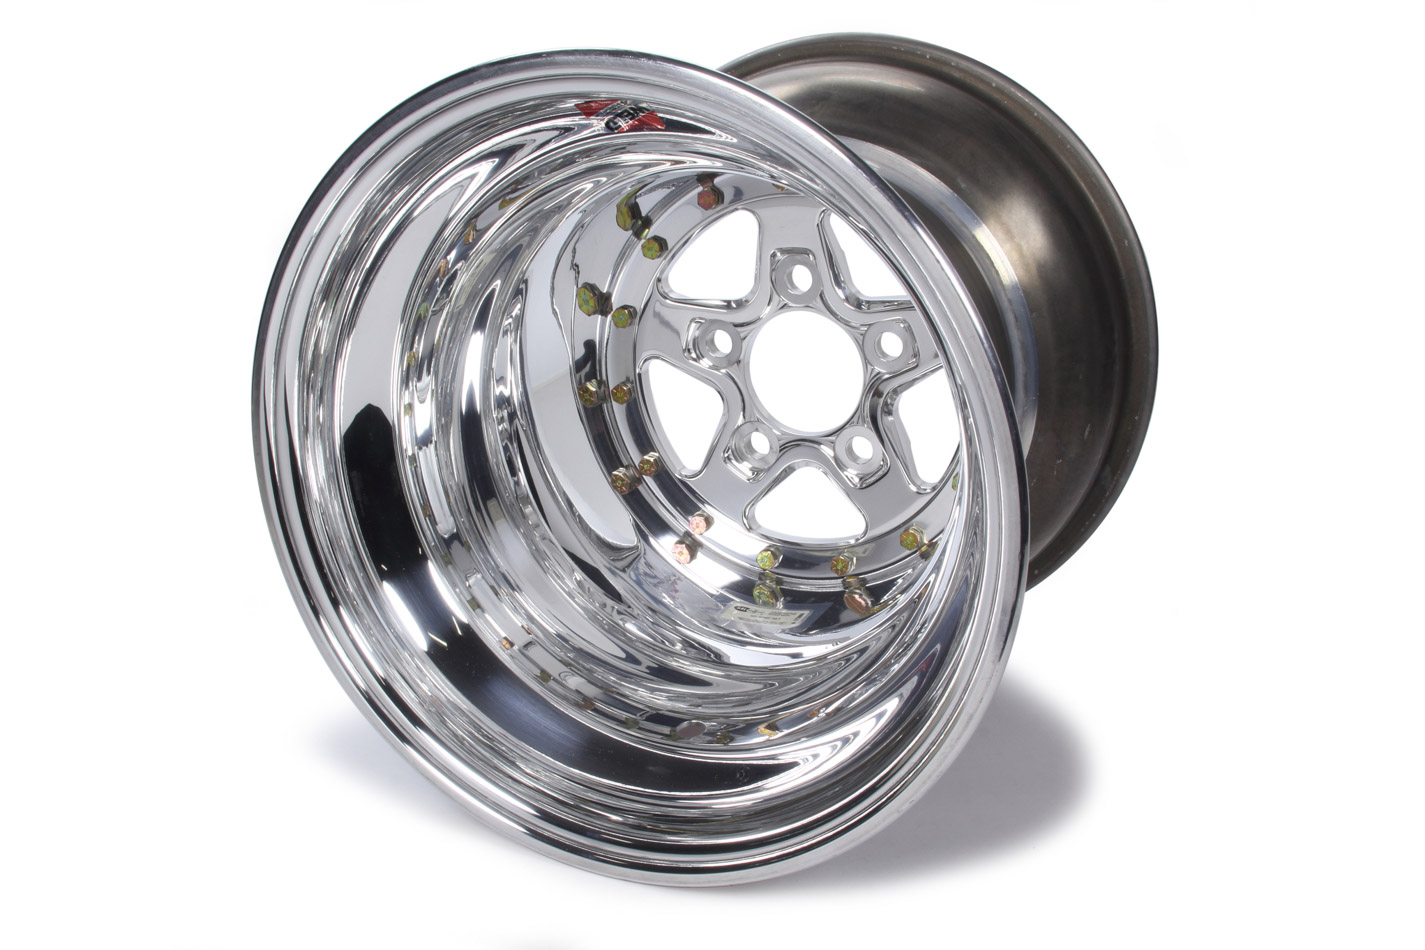 WELD RACING 15 X 15in Aluma Star 5 X 4.75in 6-3/8in BS P/N - 88-515282